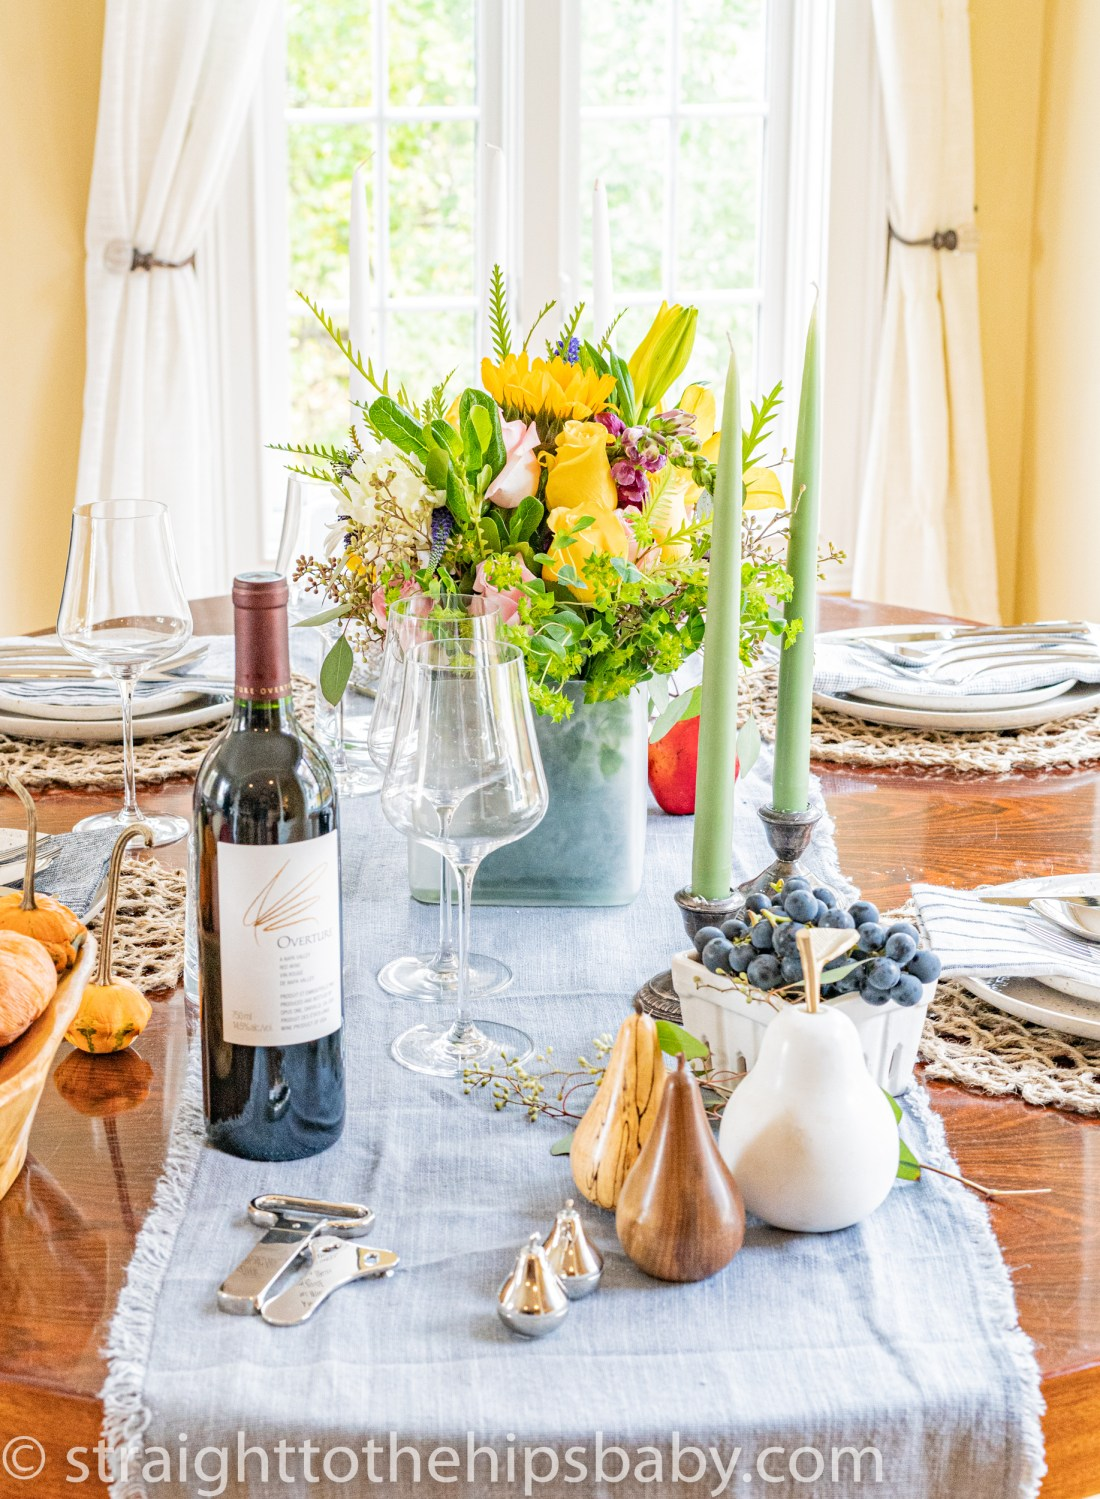 four place settings with a vibrant flower centerpiece, wine glasses, and tapered candles